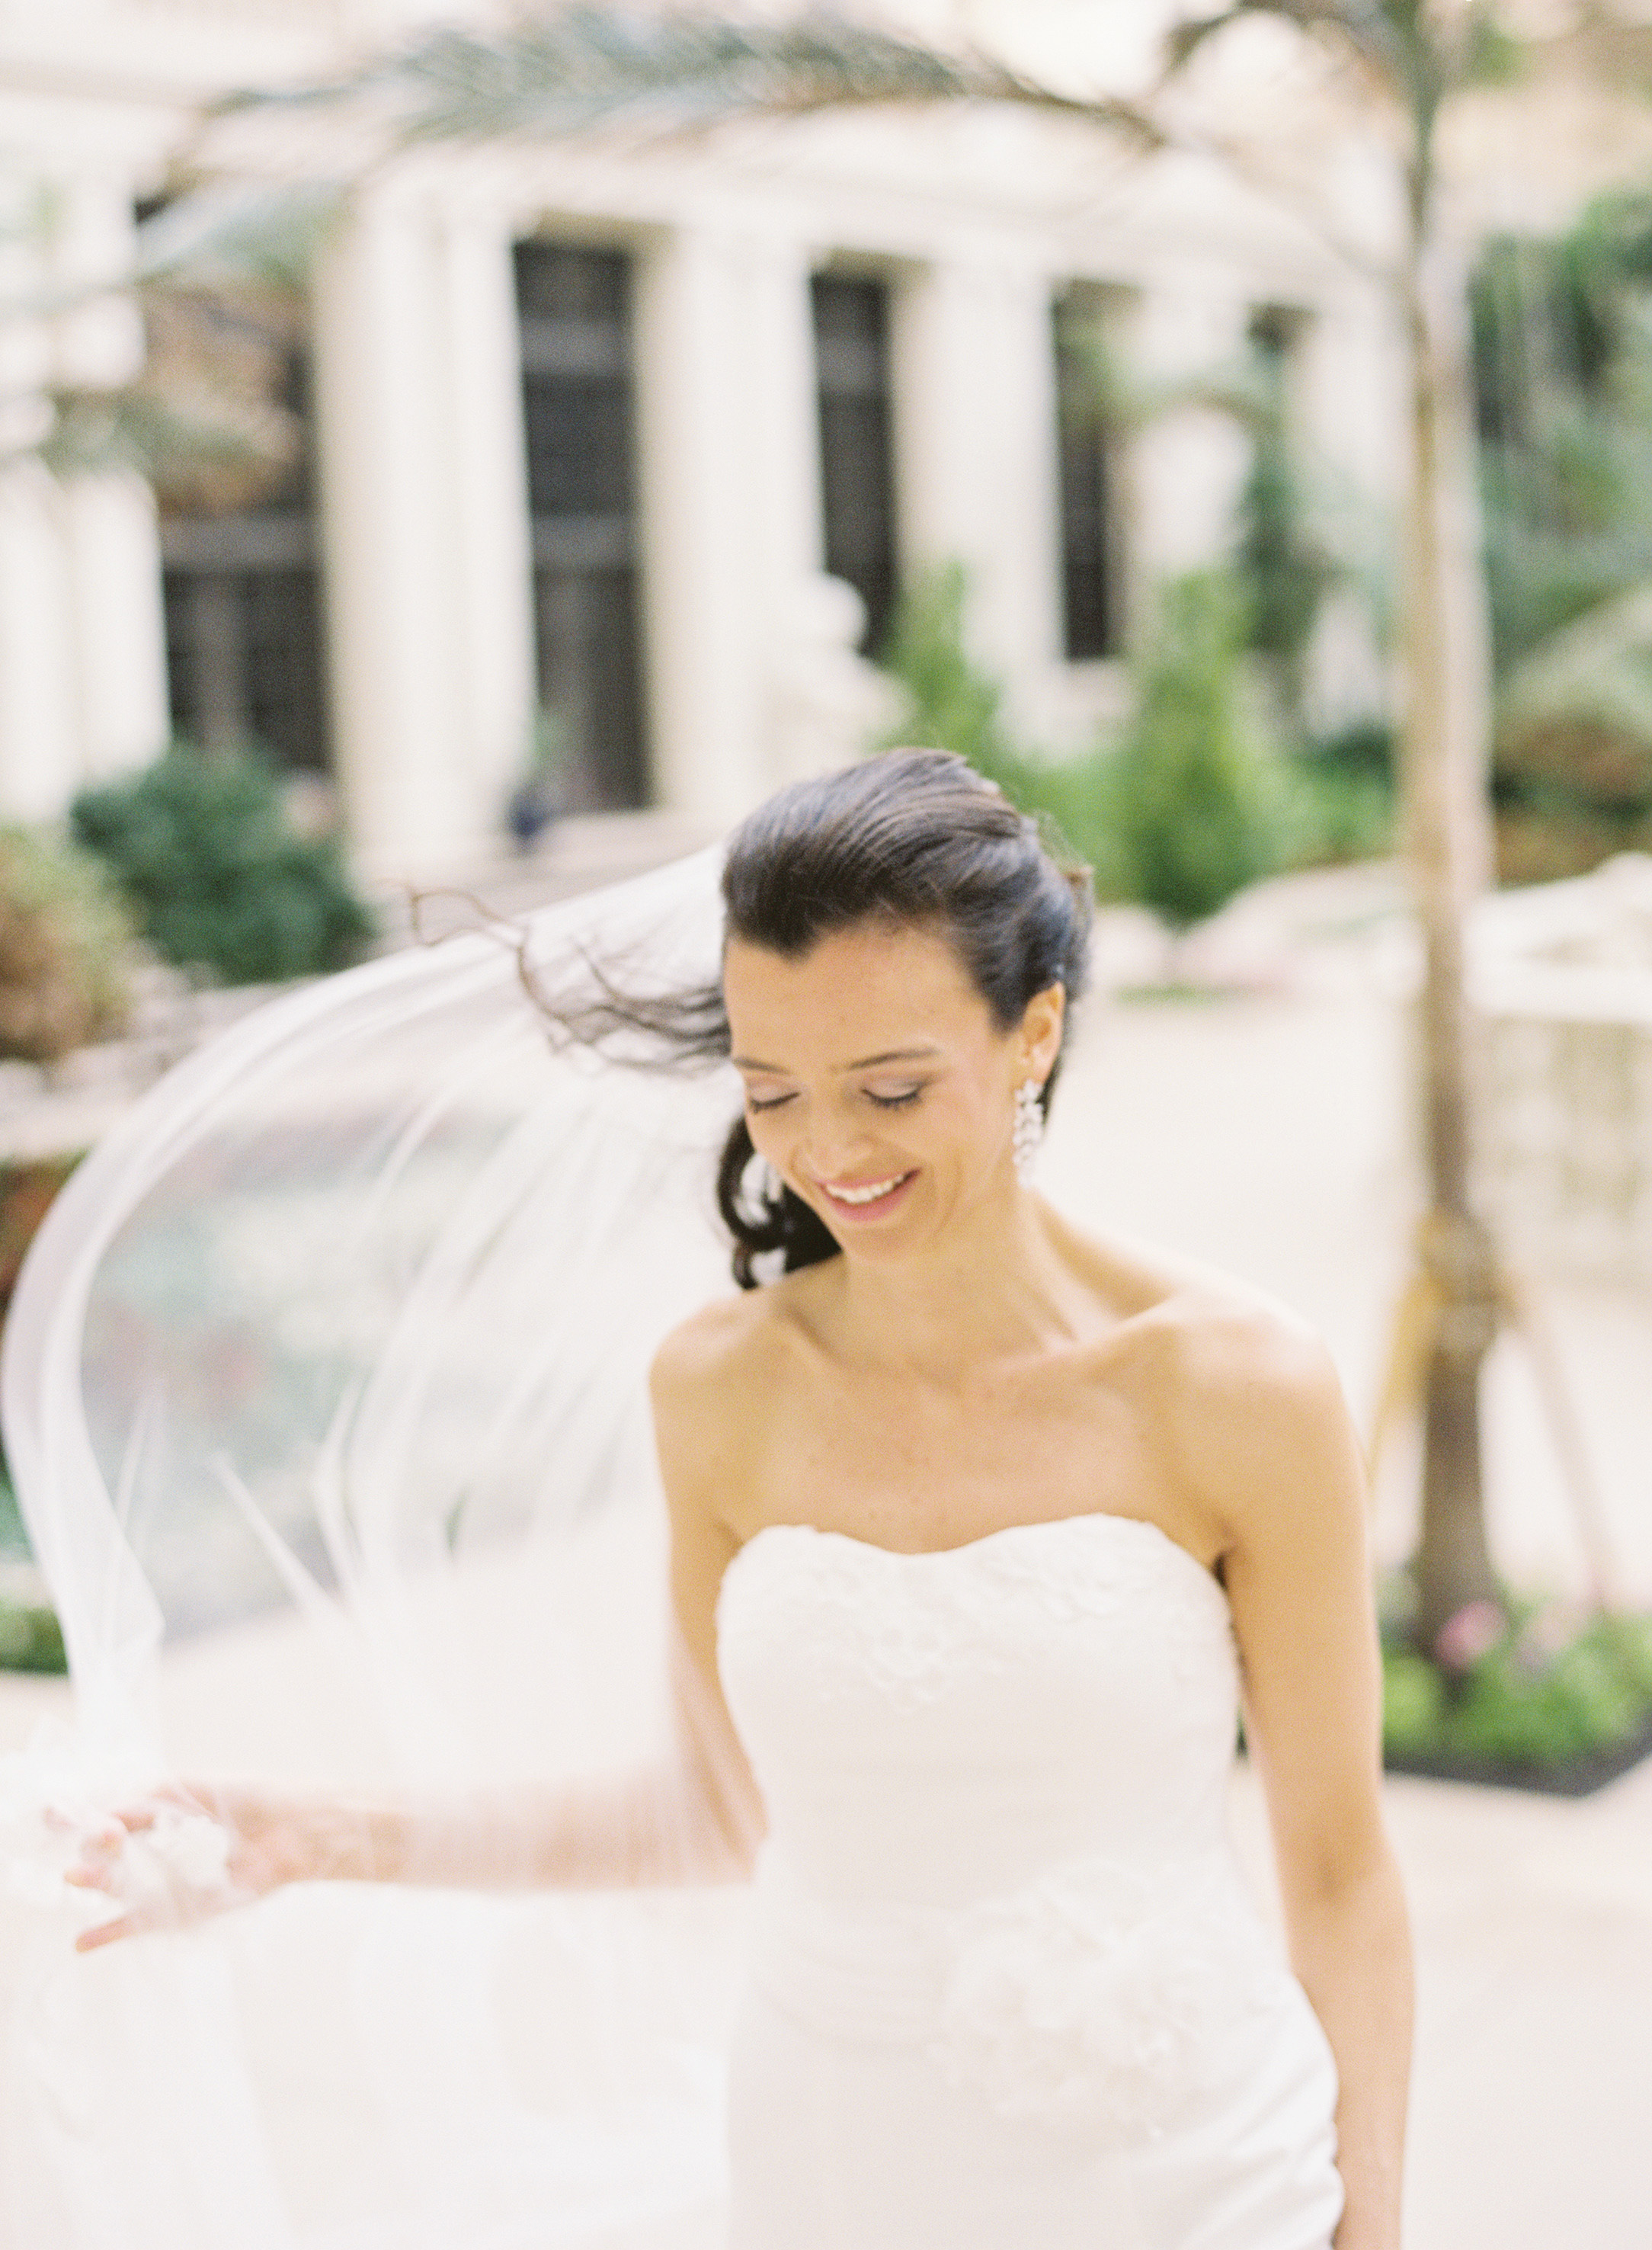 Real Weddings, Classic, Bride, Veil, Elegant, Florida, Wind